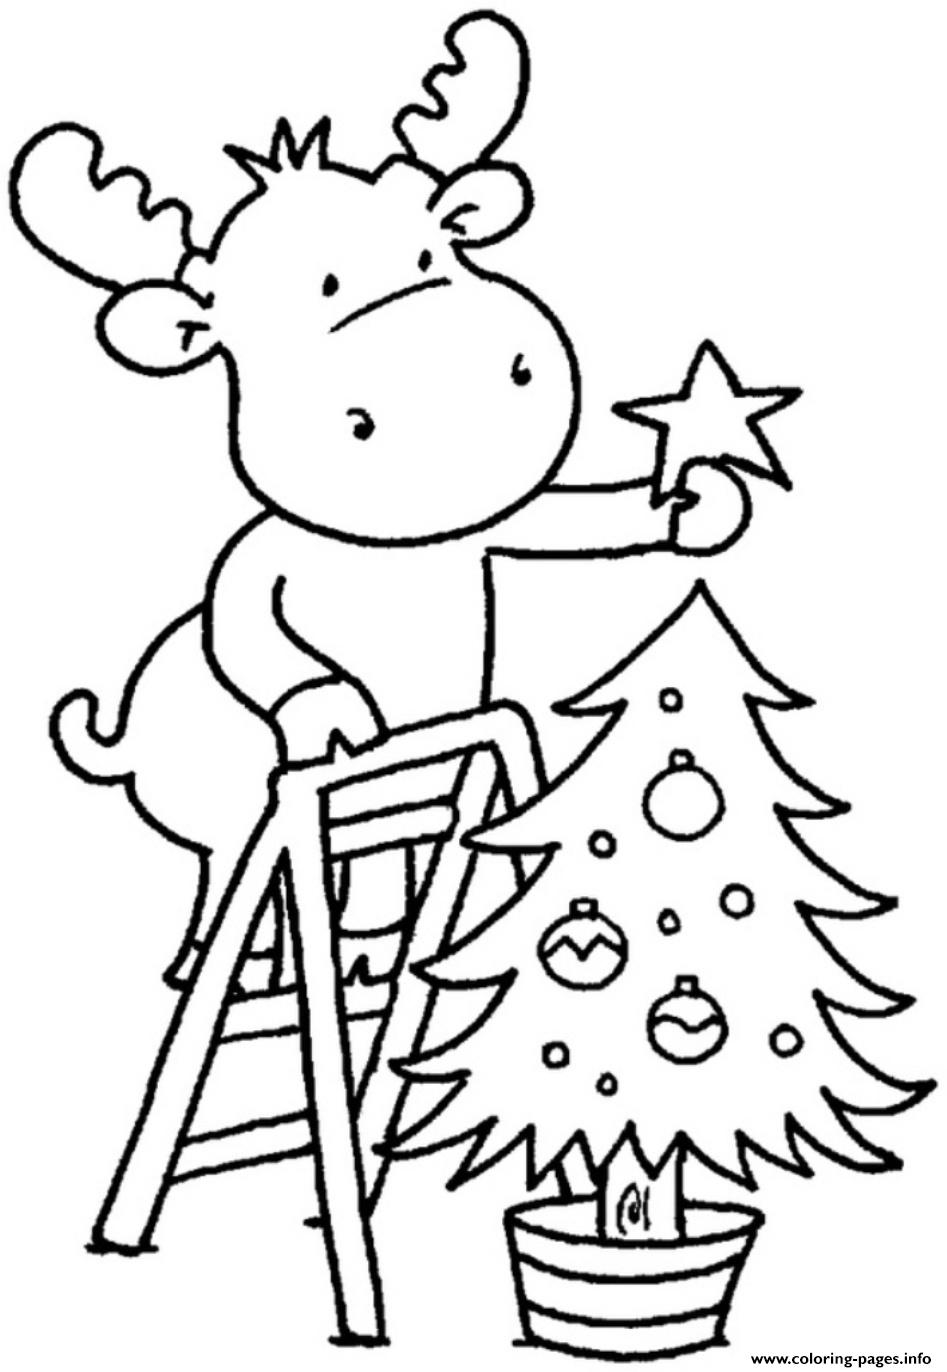 christmas tree for children coloring pages print download - Childrens Coloring Pages Print